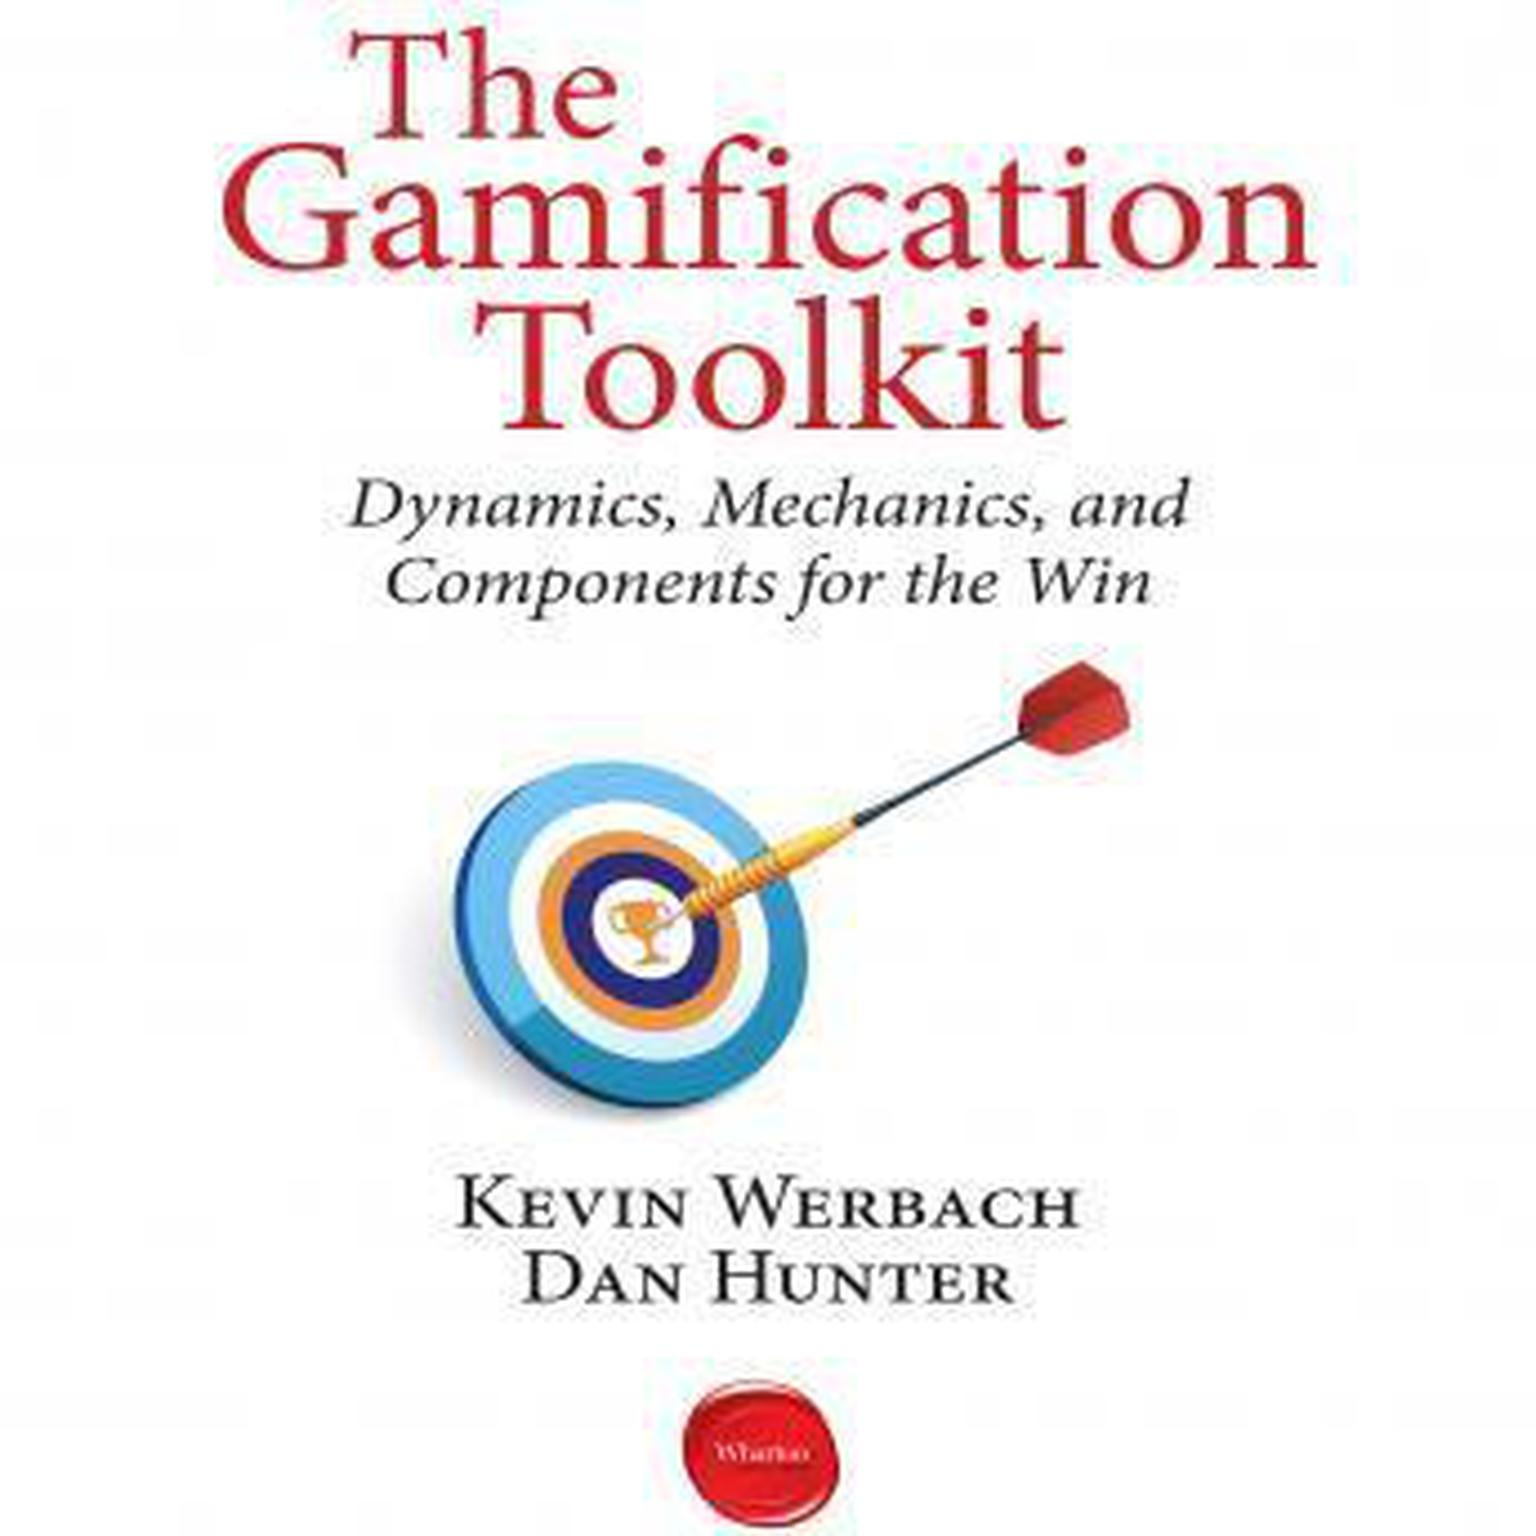 Printable The Gamification Toolkit: Dynamics, Mechanics, and Components for the Win Audiobook Cover Art